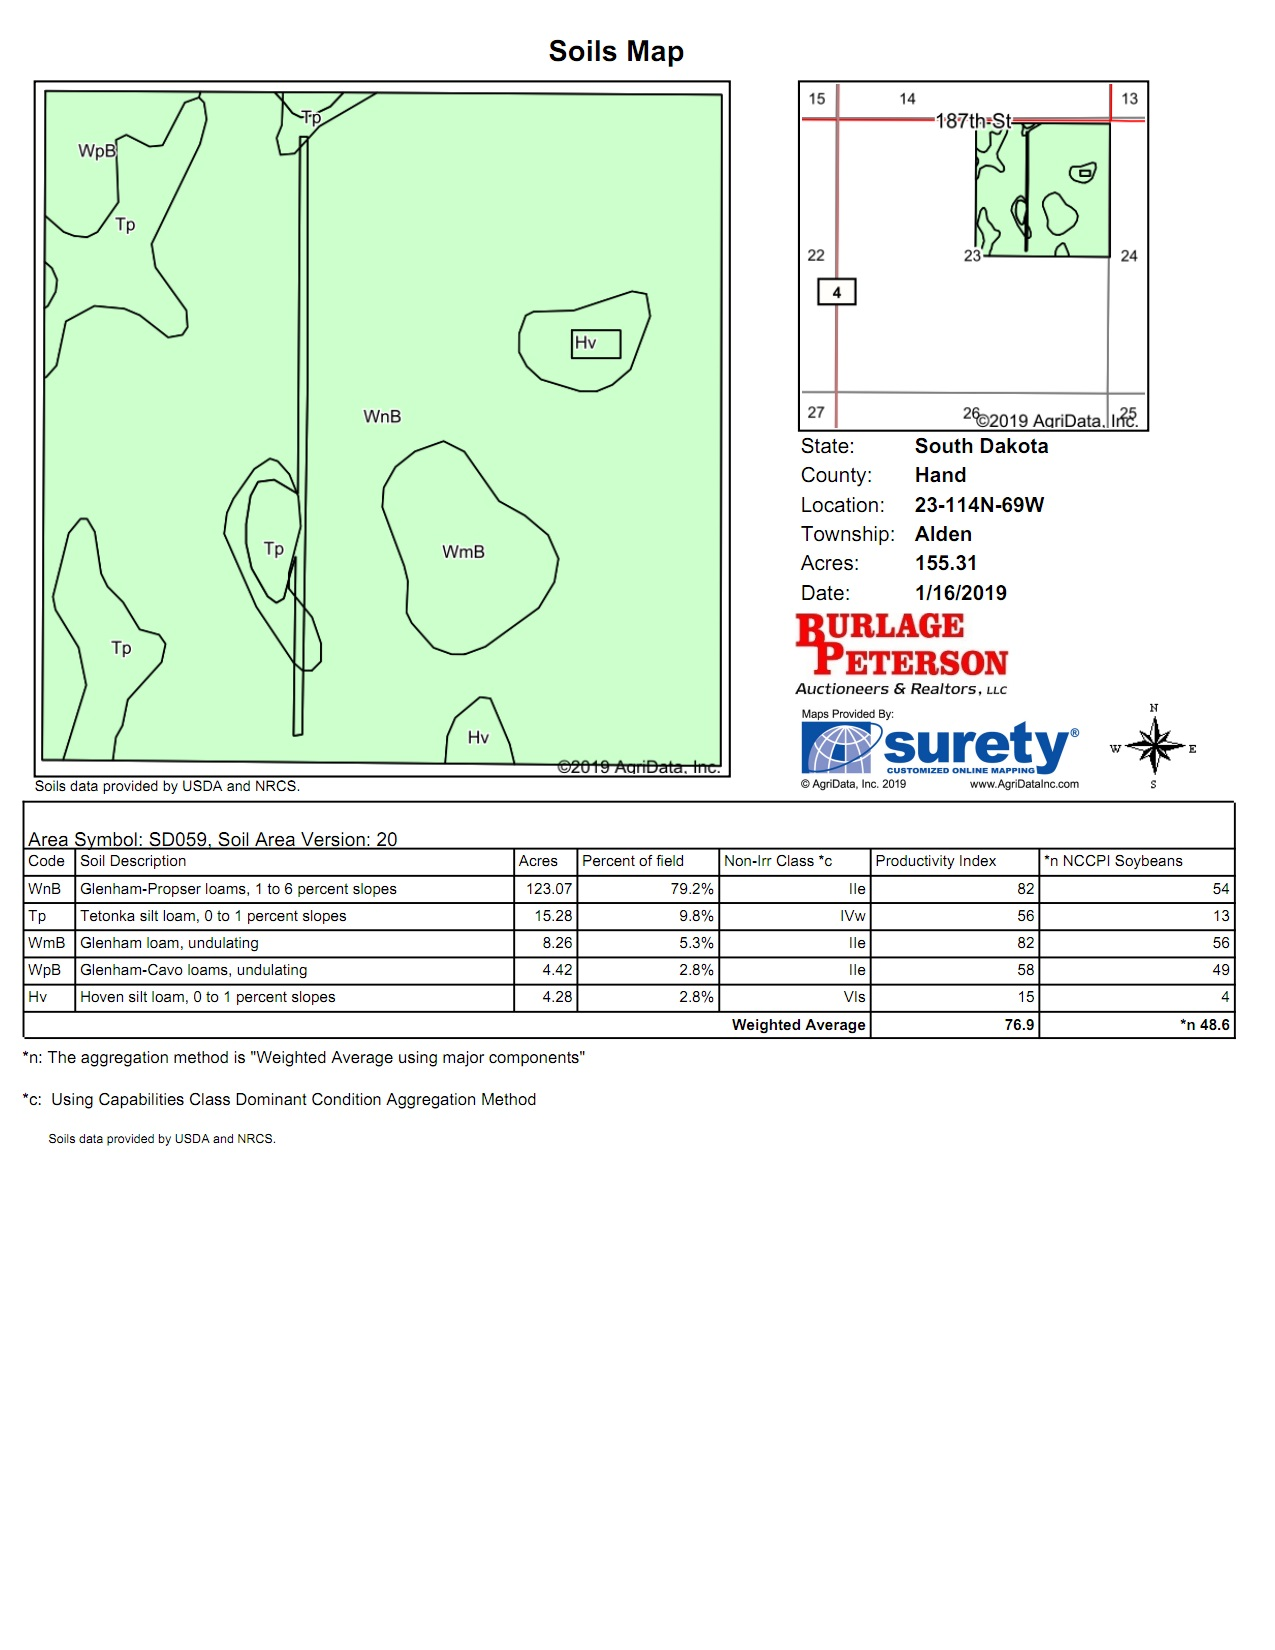 Tract 4 Soil Map